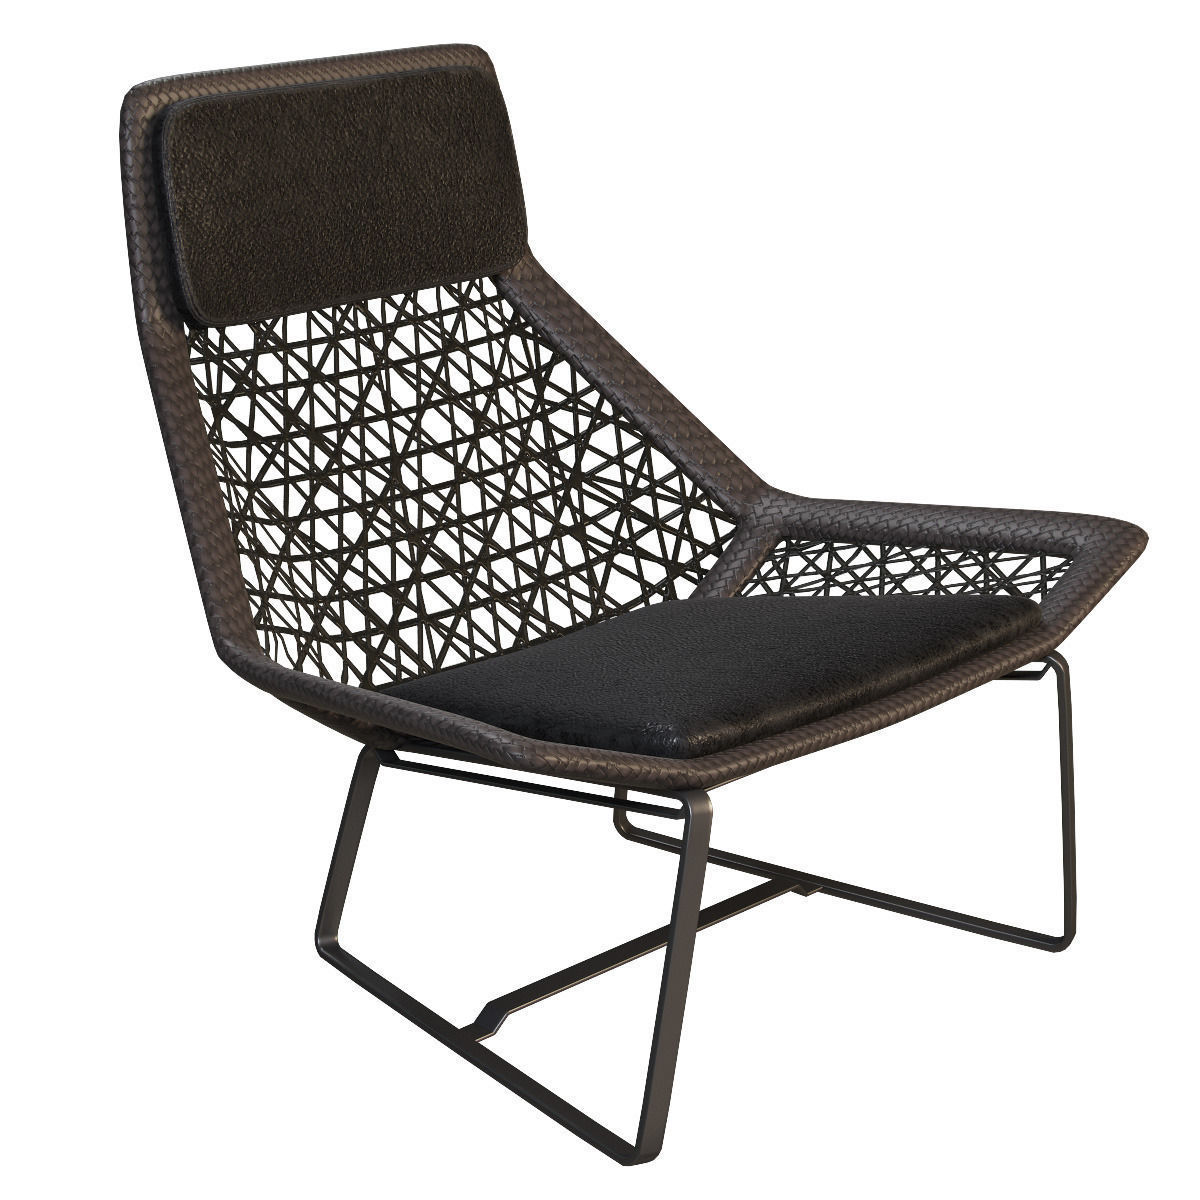 outdoor wicker chair maia of kettal 3d model max